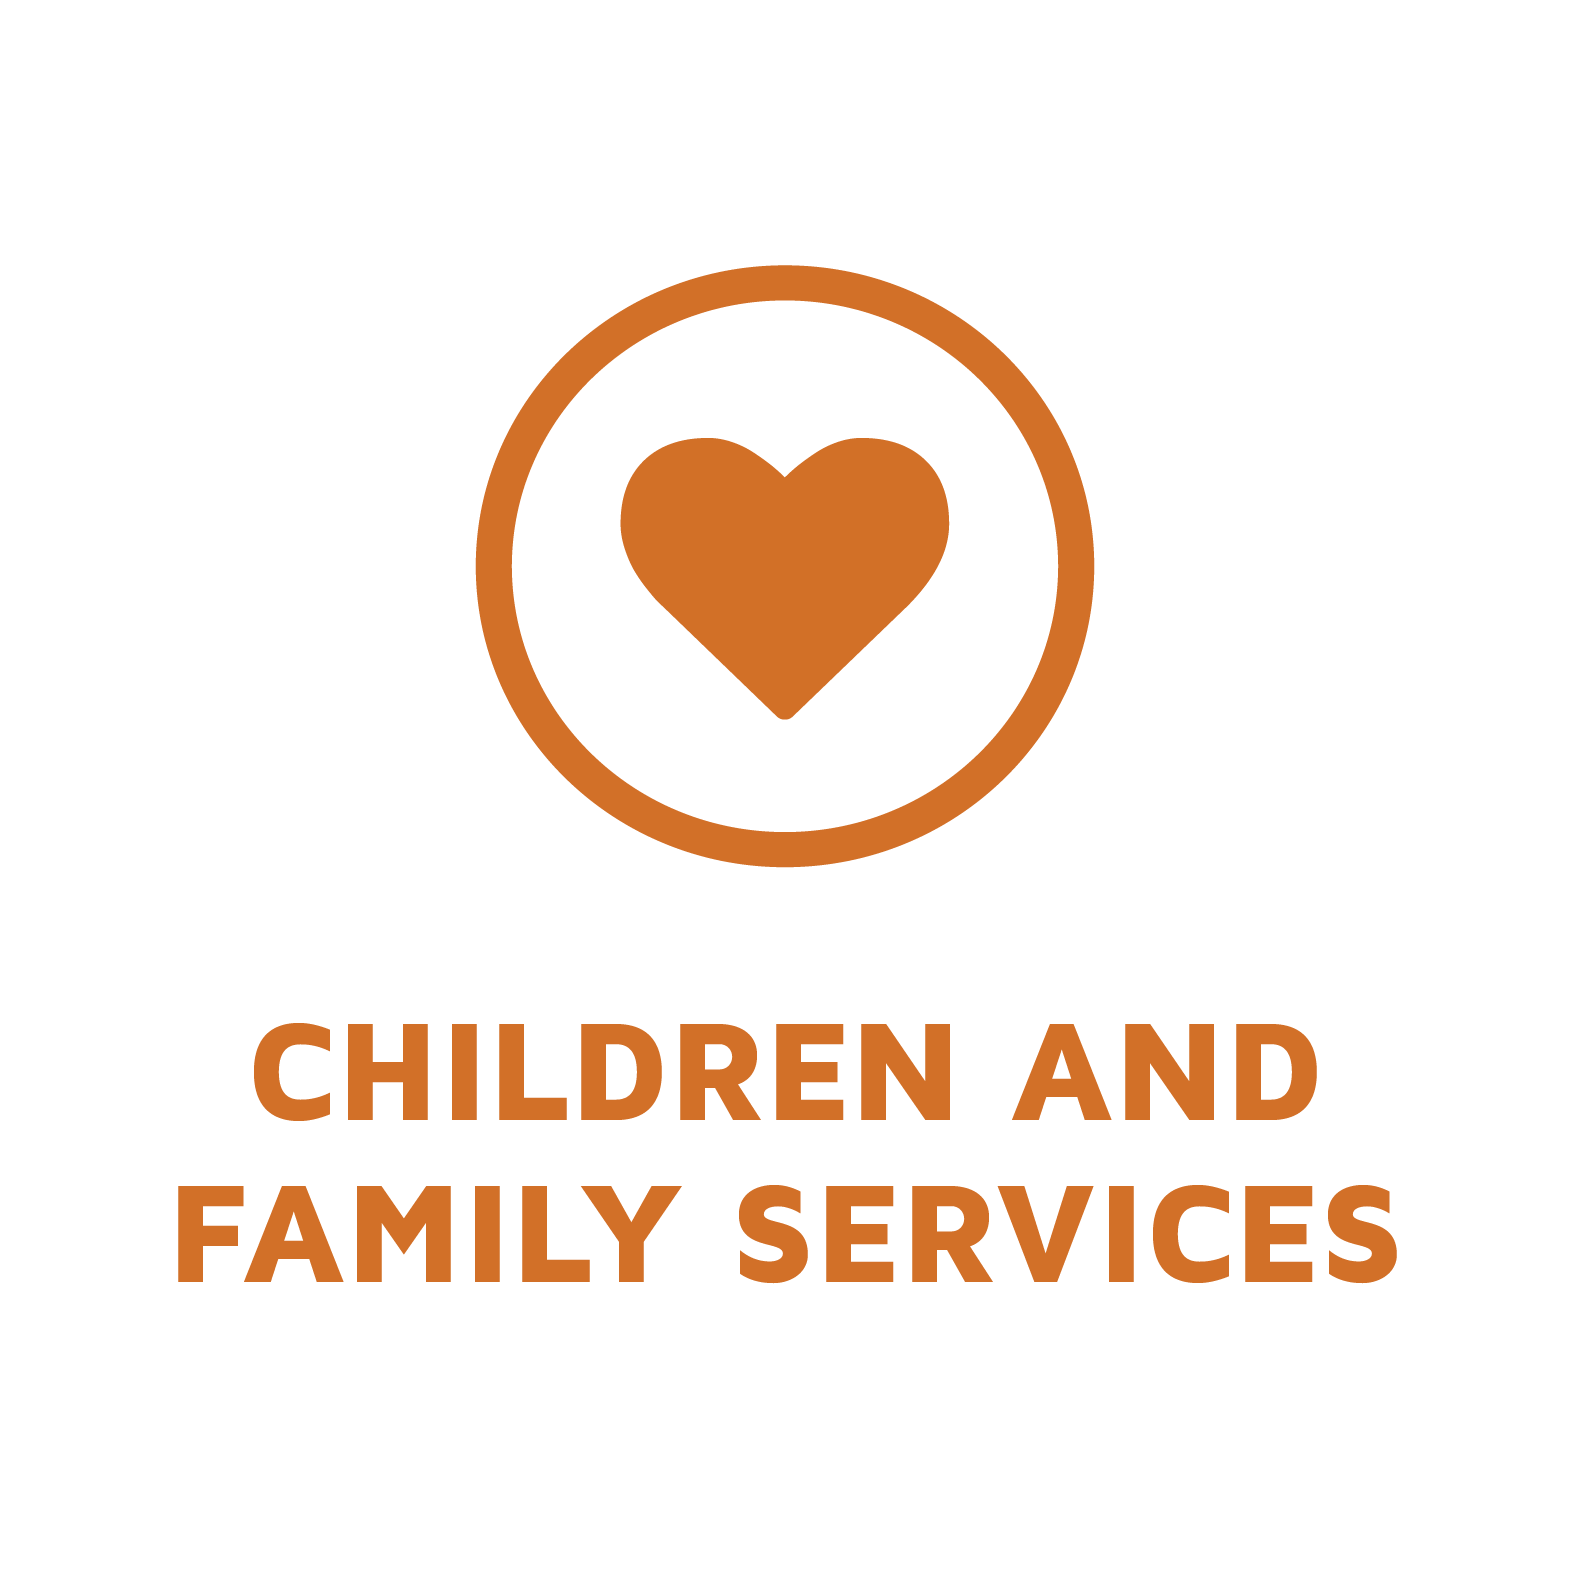 Children and Family Services Tile